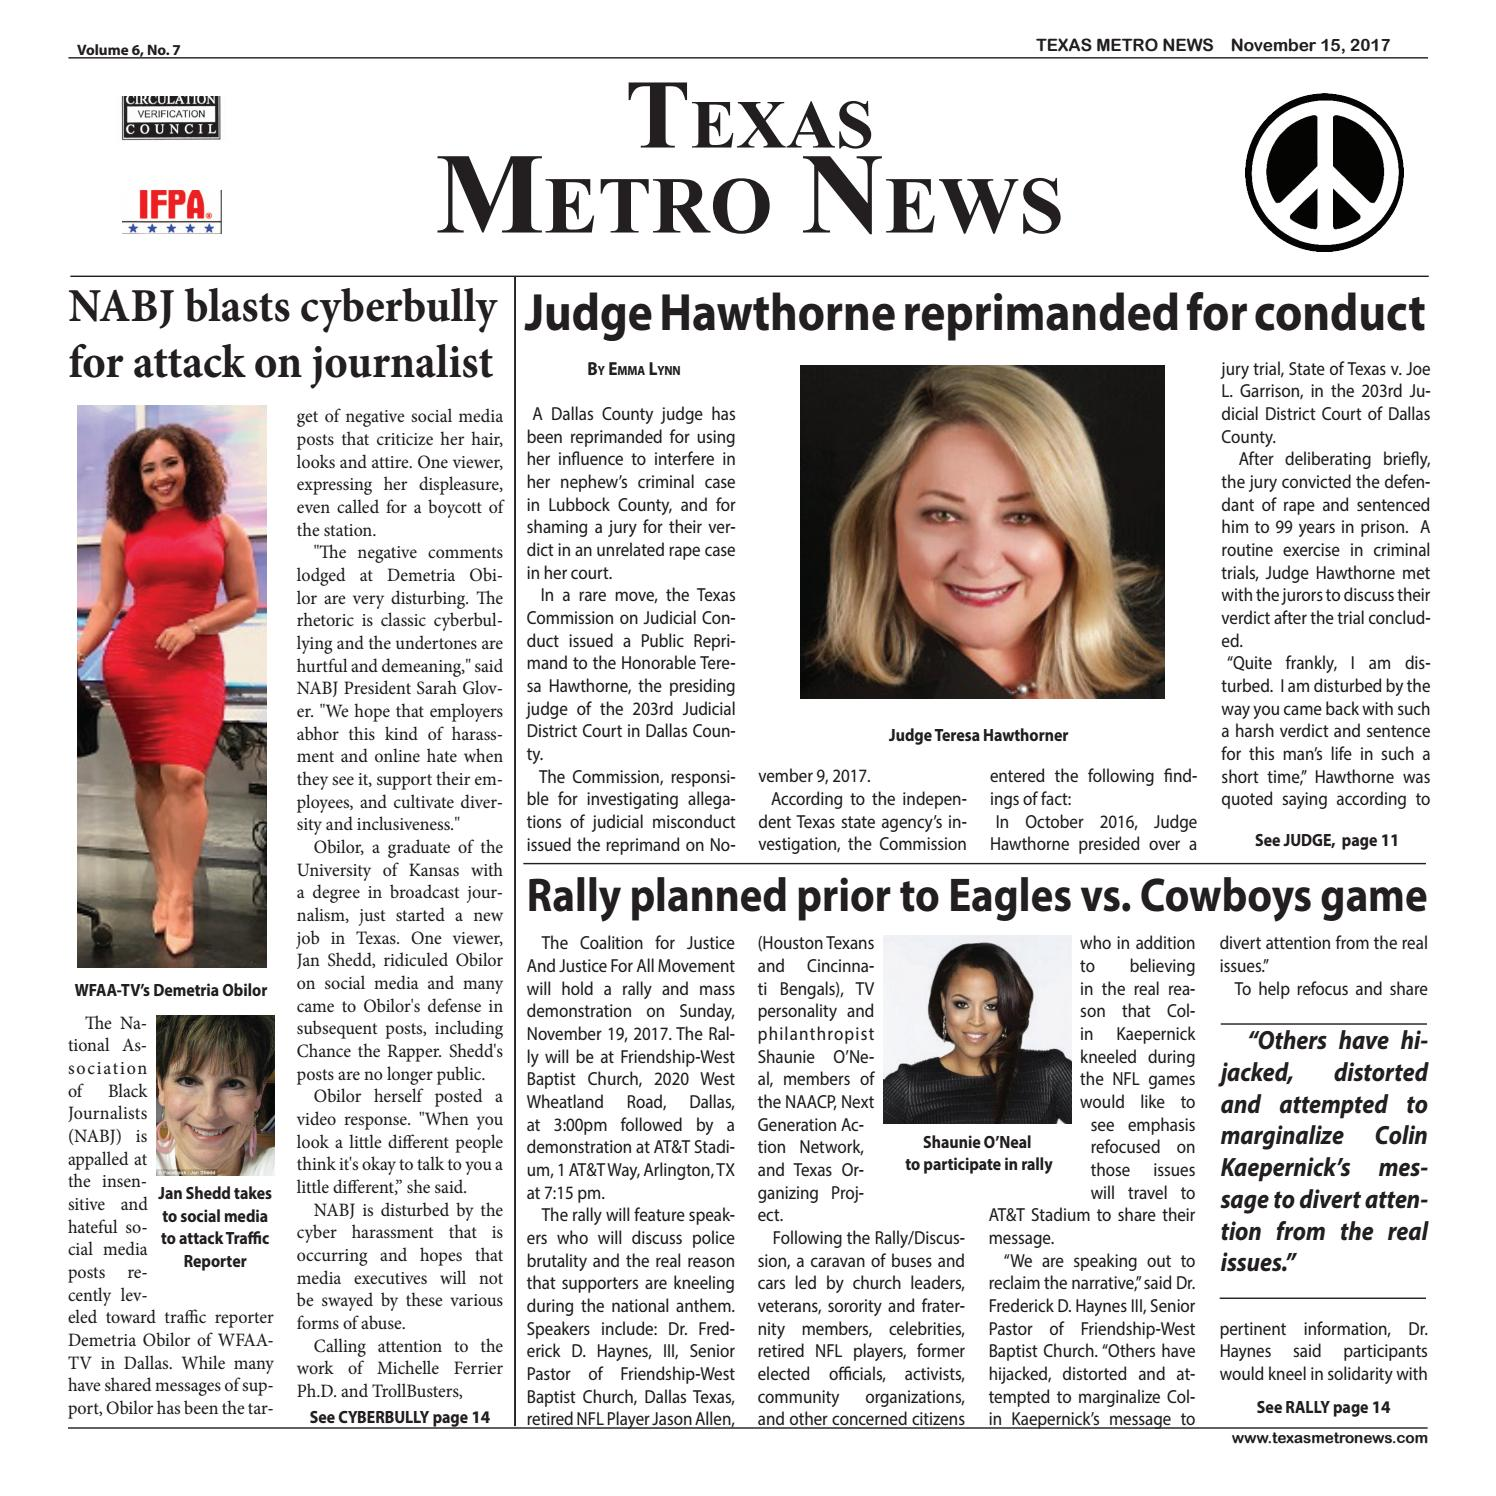 Texas metro news 11 15 17 by Cheryl Smith - issuu